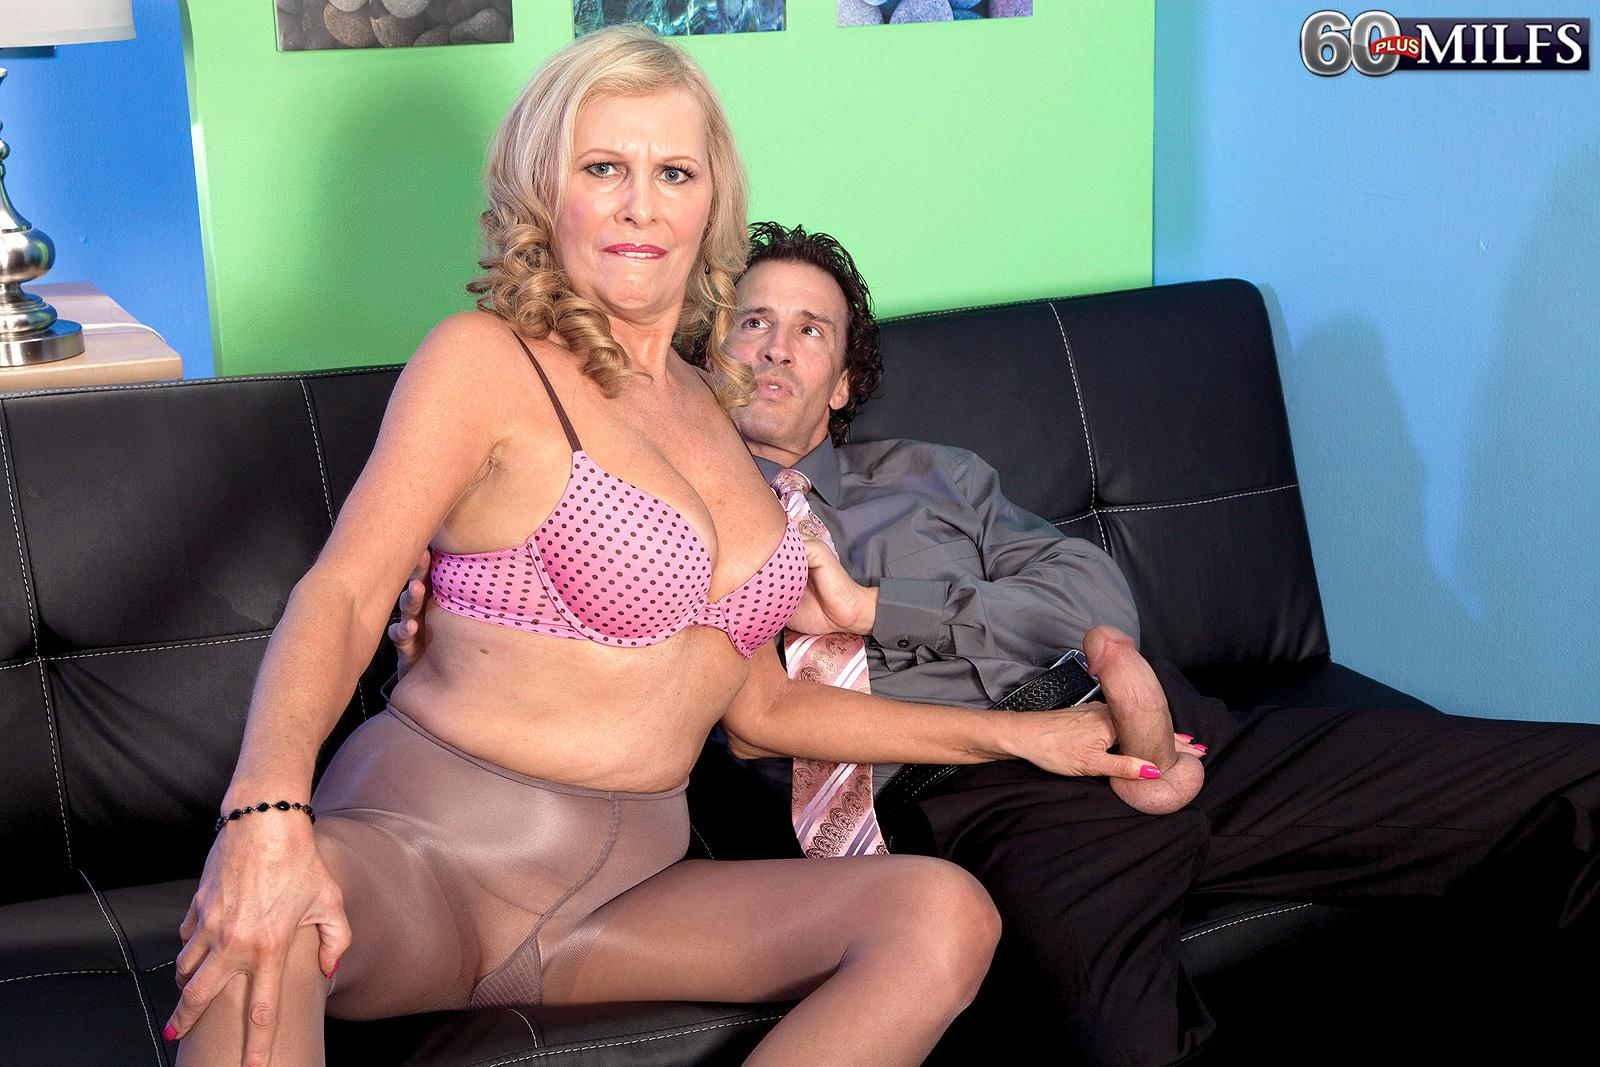 Bosomy light-haired MILF over 60 Bethany James delivering big penis oral job in office